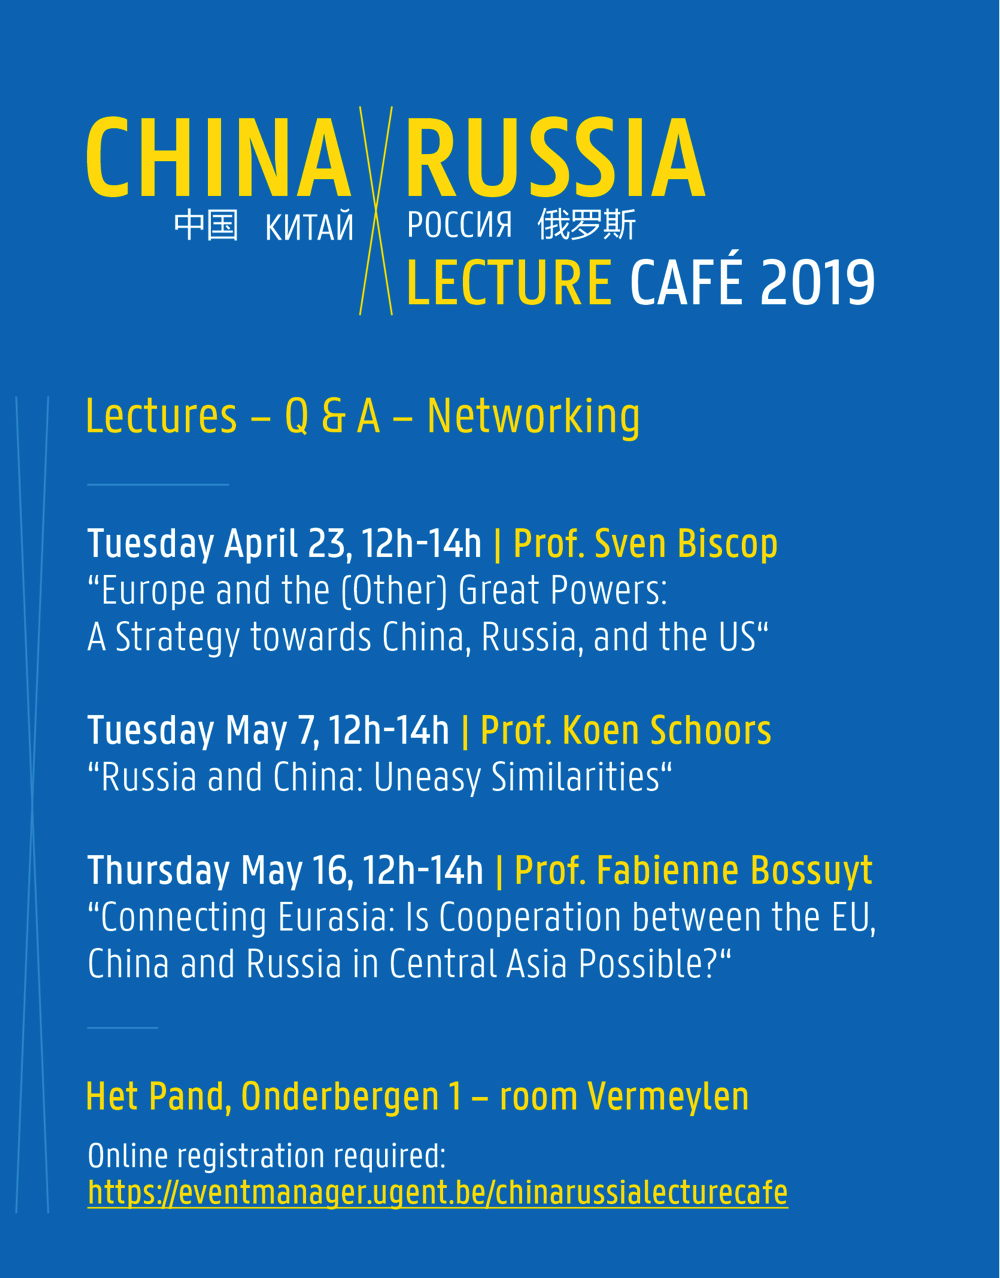 Affiche.  Gent. Lecture Café 2019. Connecting Eurasia - is cooperatoion between the EU, China and Russia in Central Asia Possible. 2019-05-16